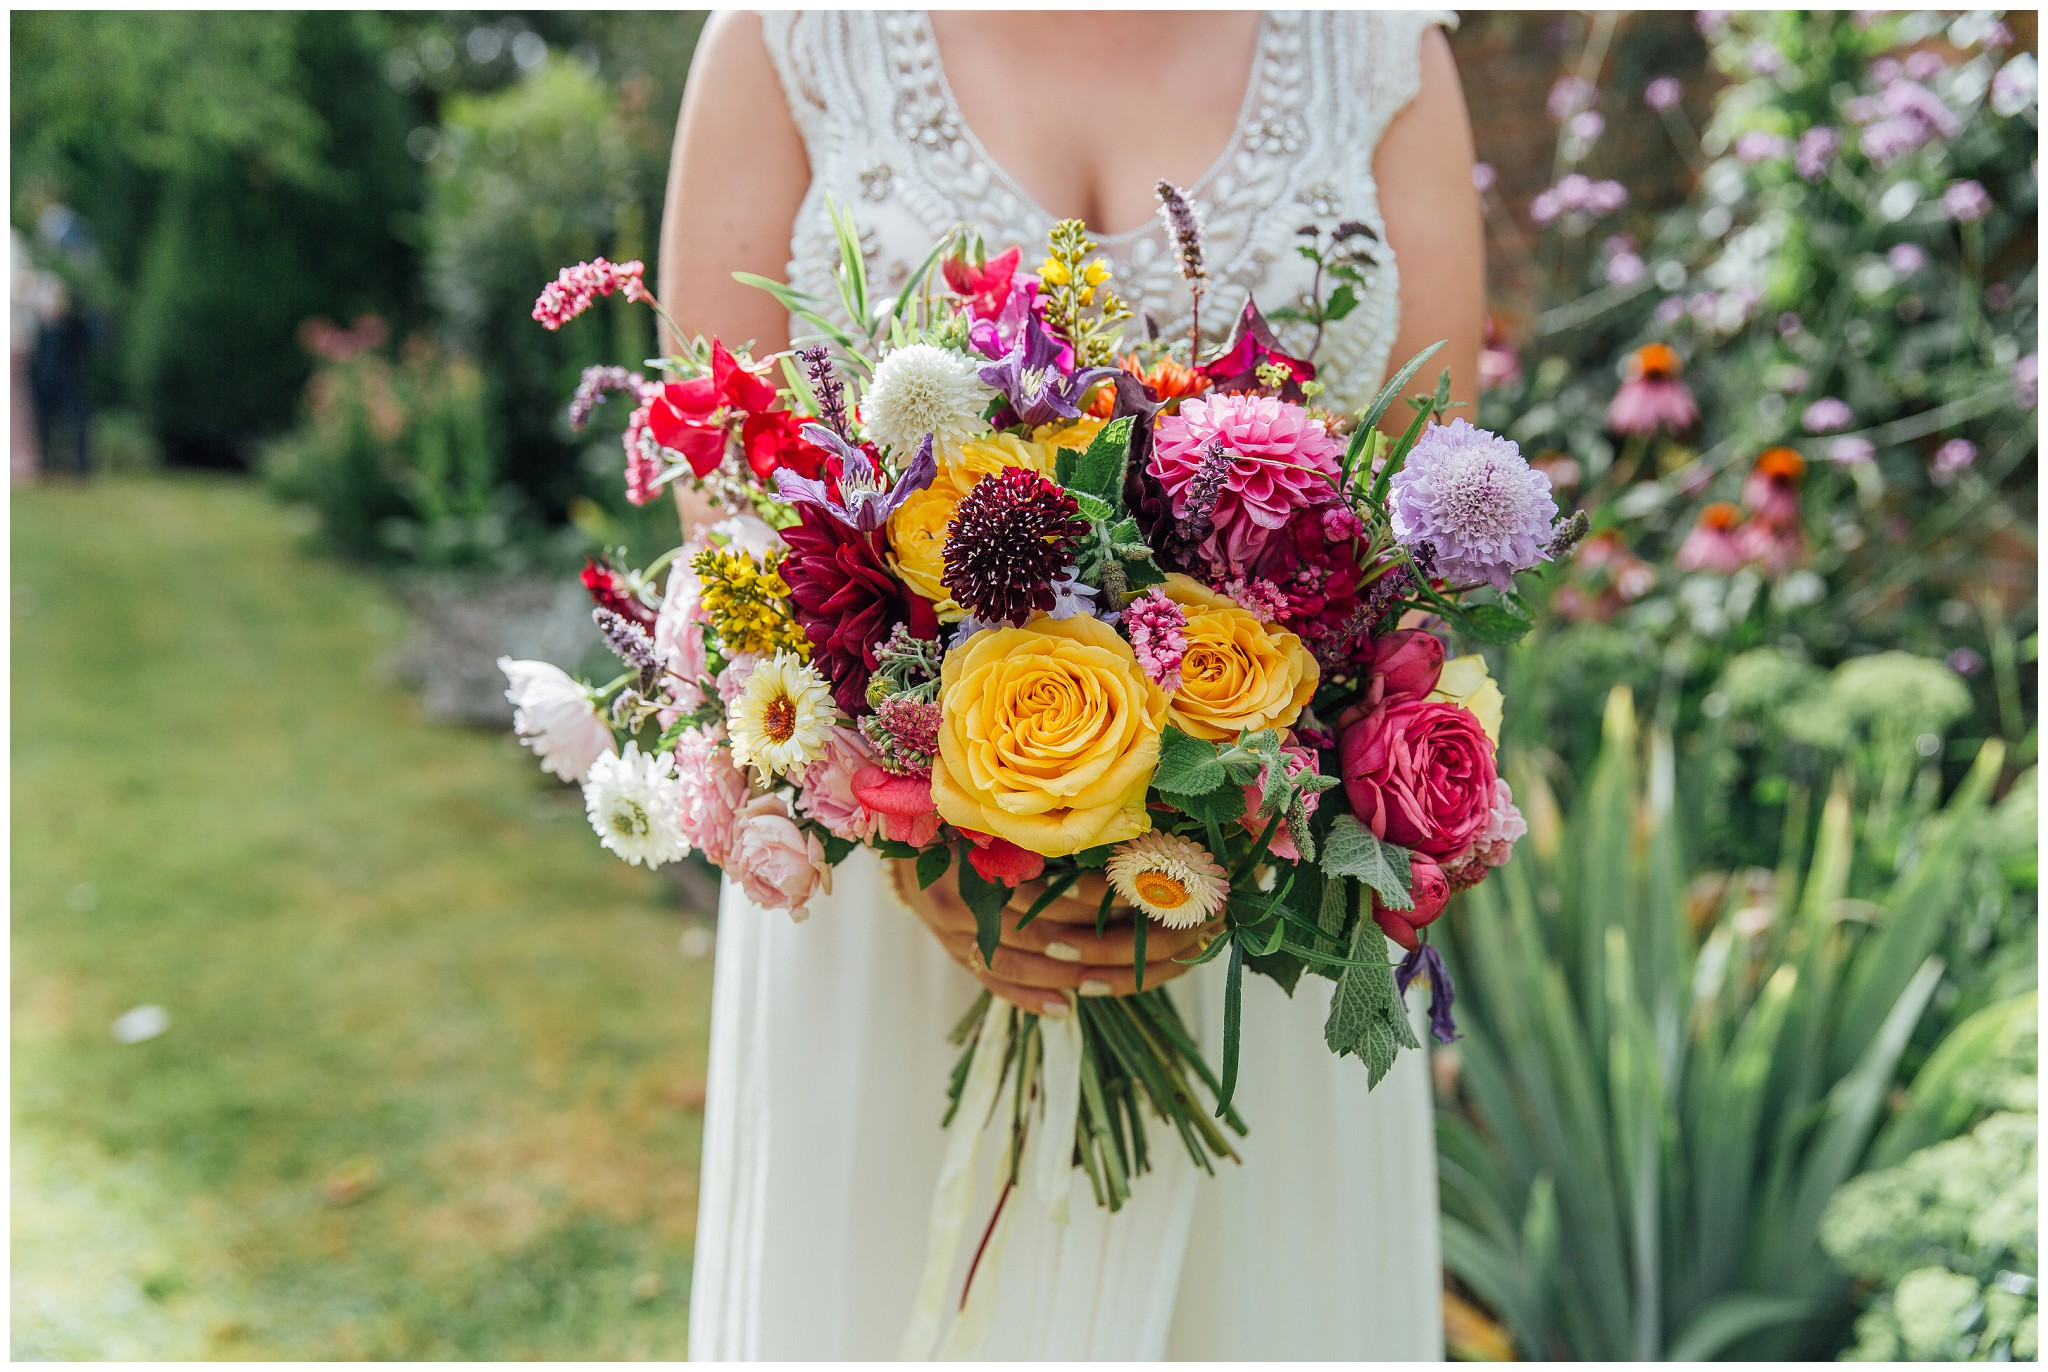 Colourful rustic bride bouquet